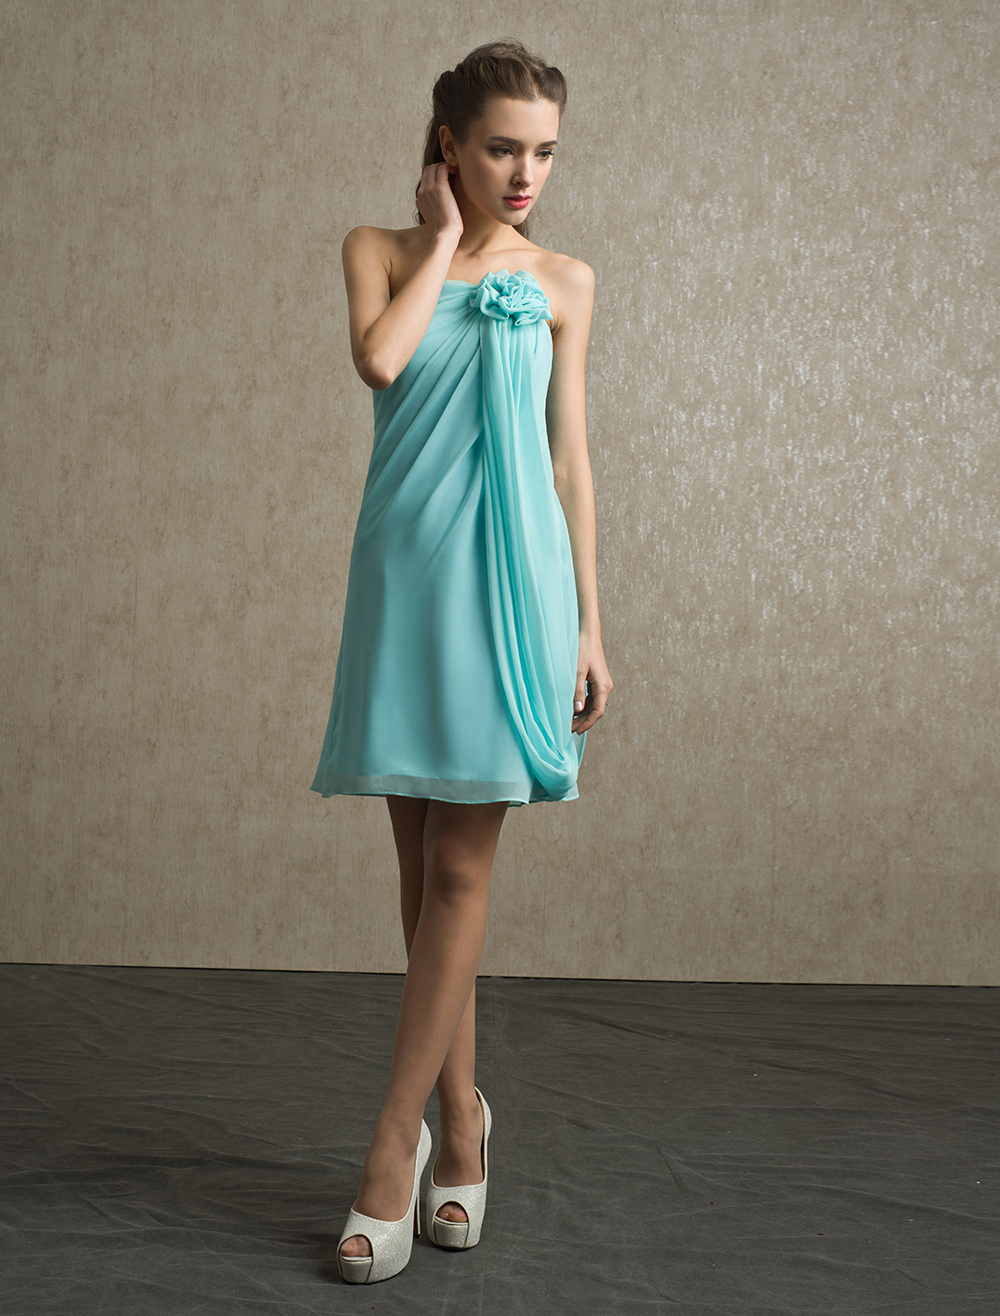 Flower Chiffon A-line Strapless Bridesmaid Dress with Elegant Knee-Length Skirt